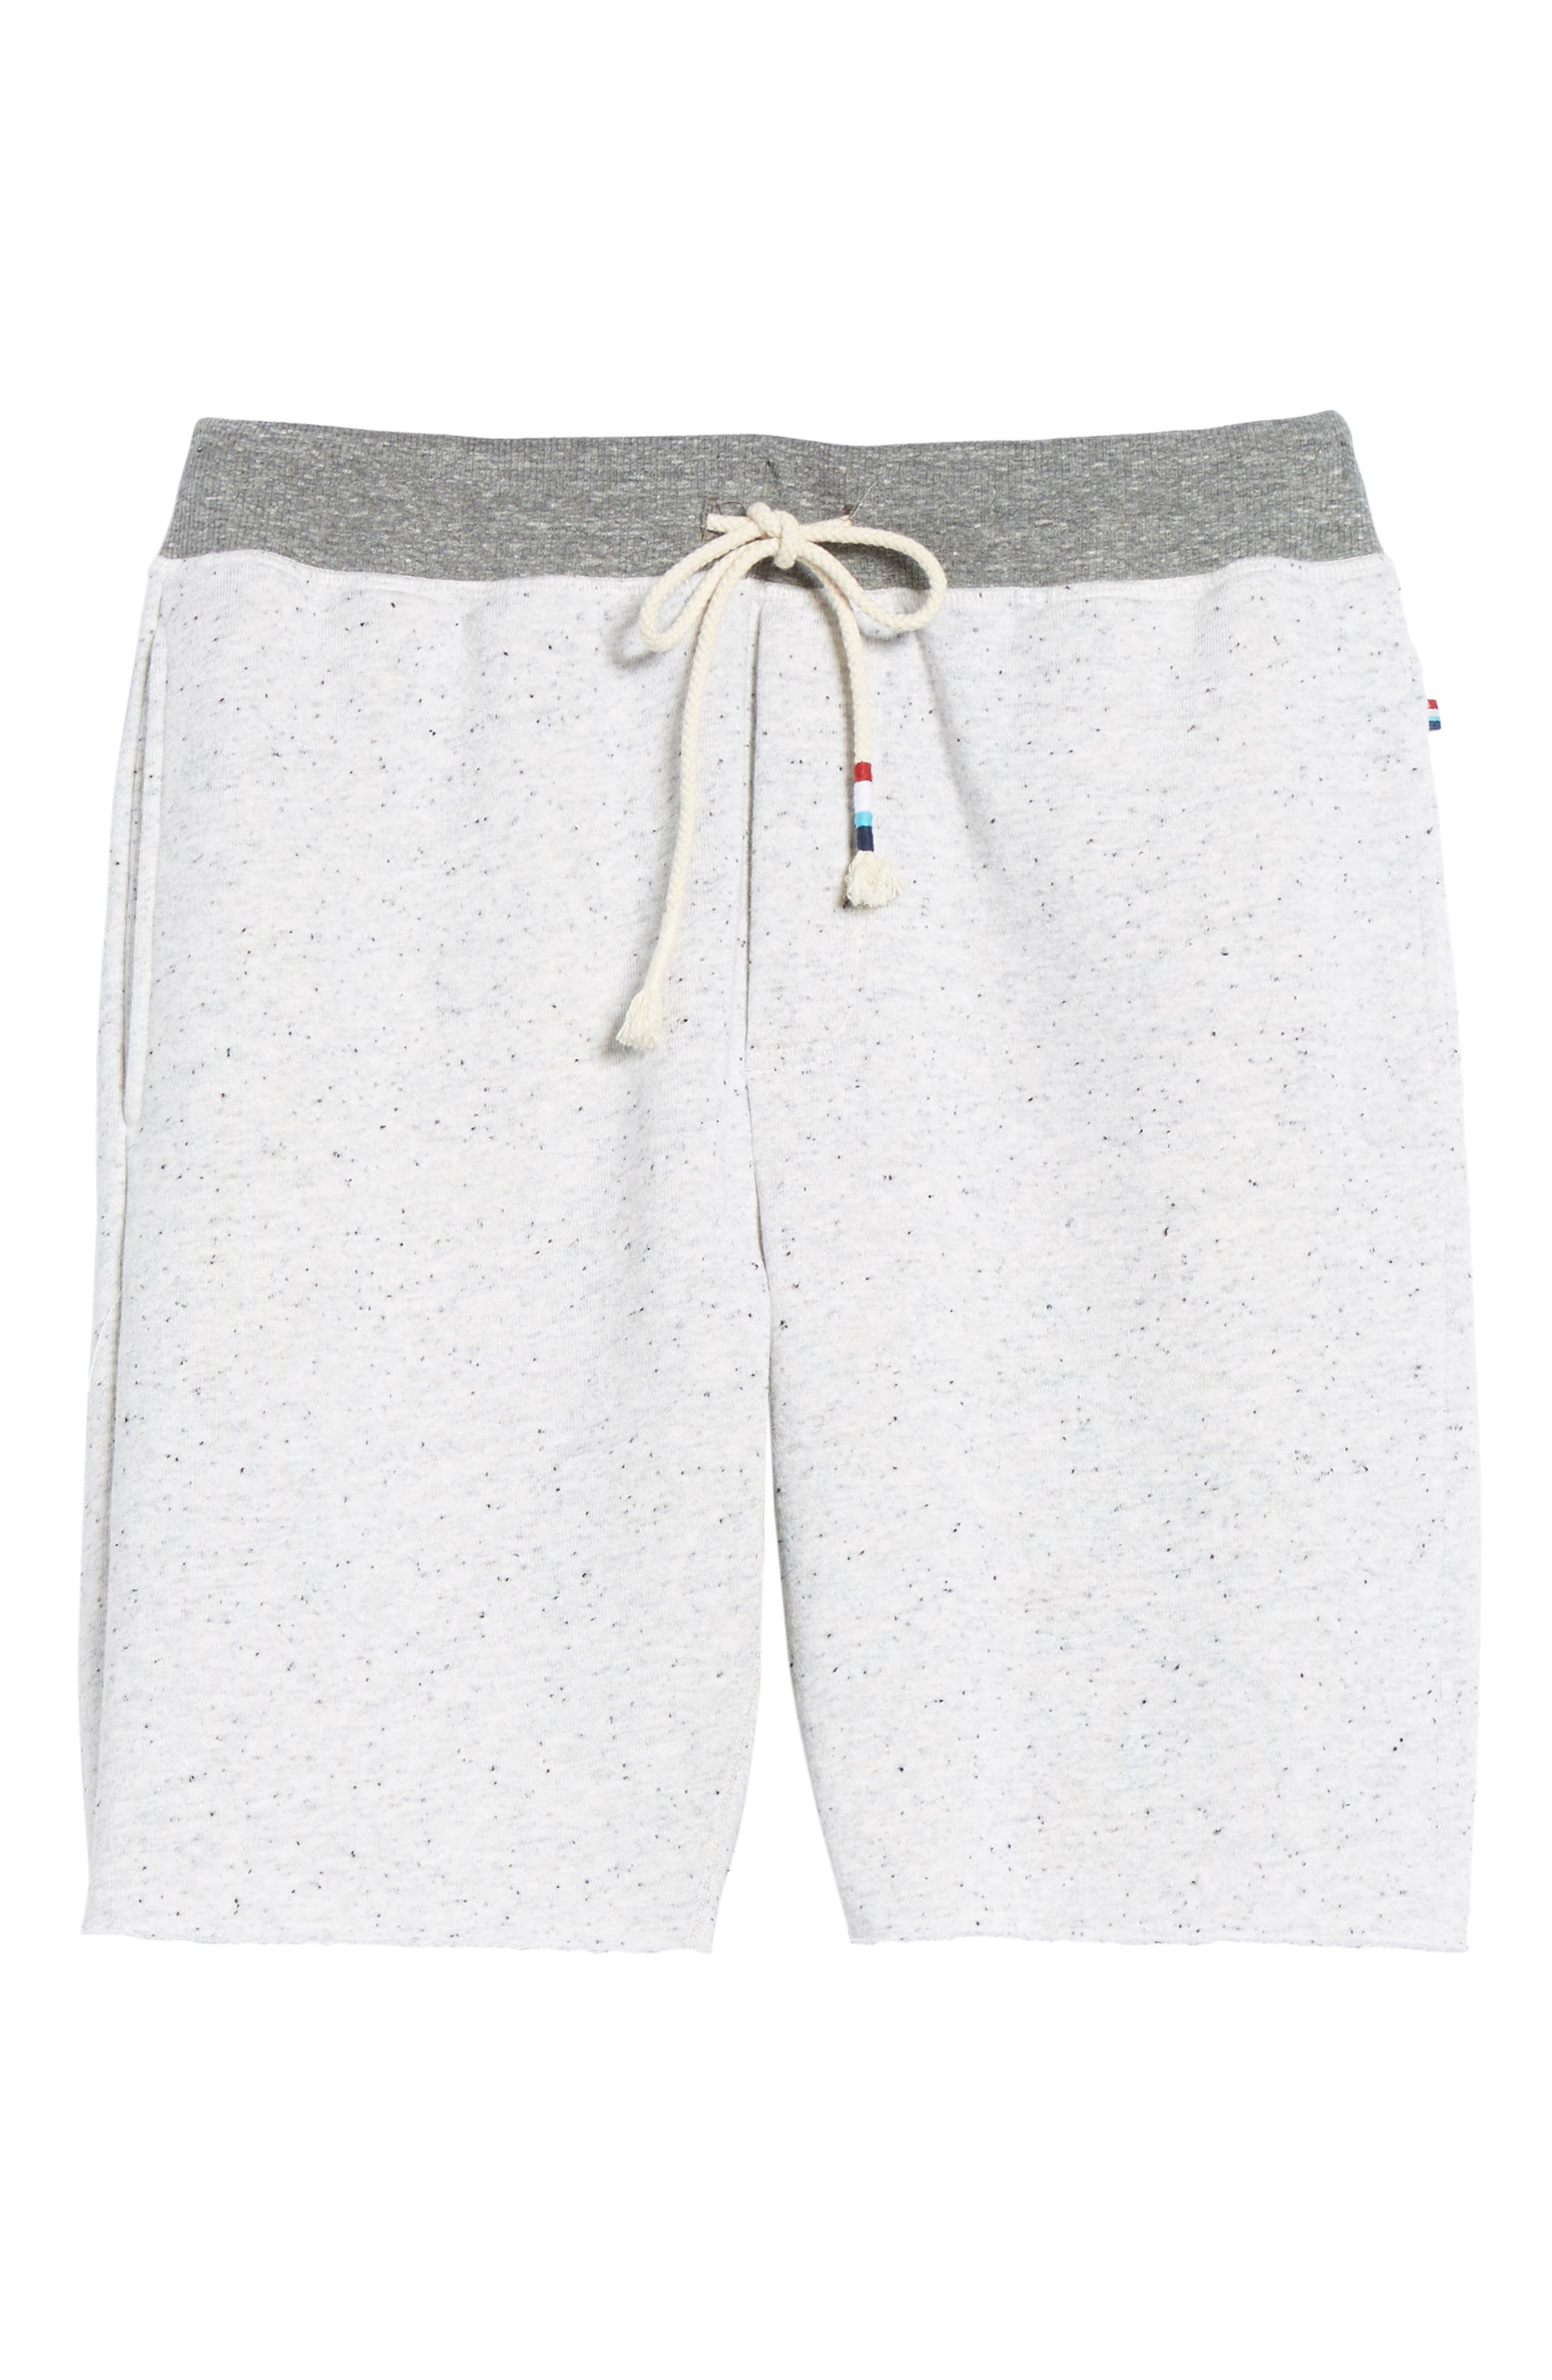 Peppered Shorts,                             Alternate thumbnail 6, color,